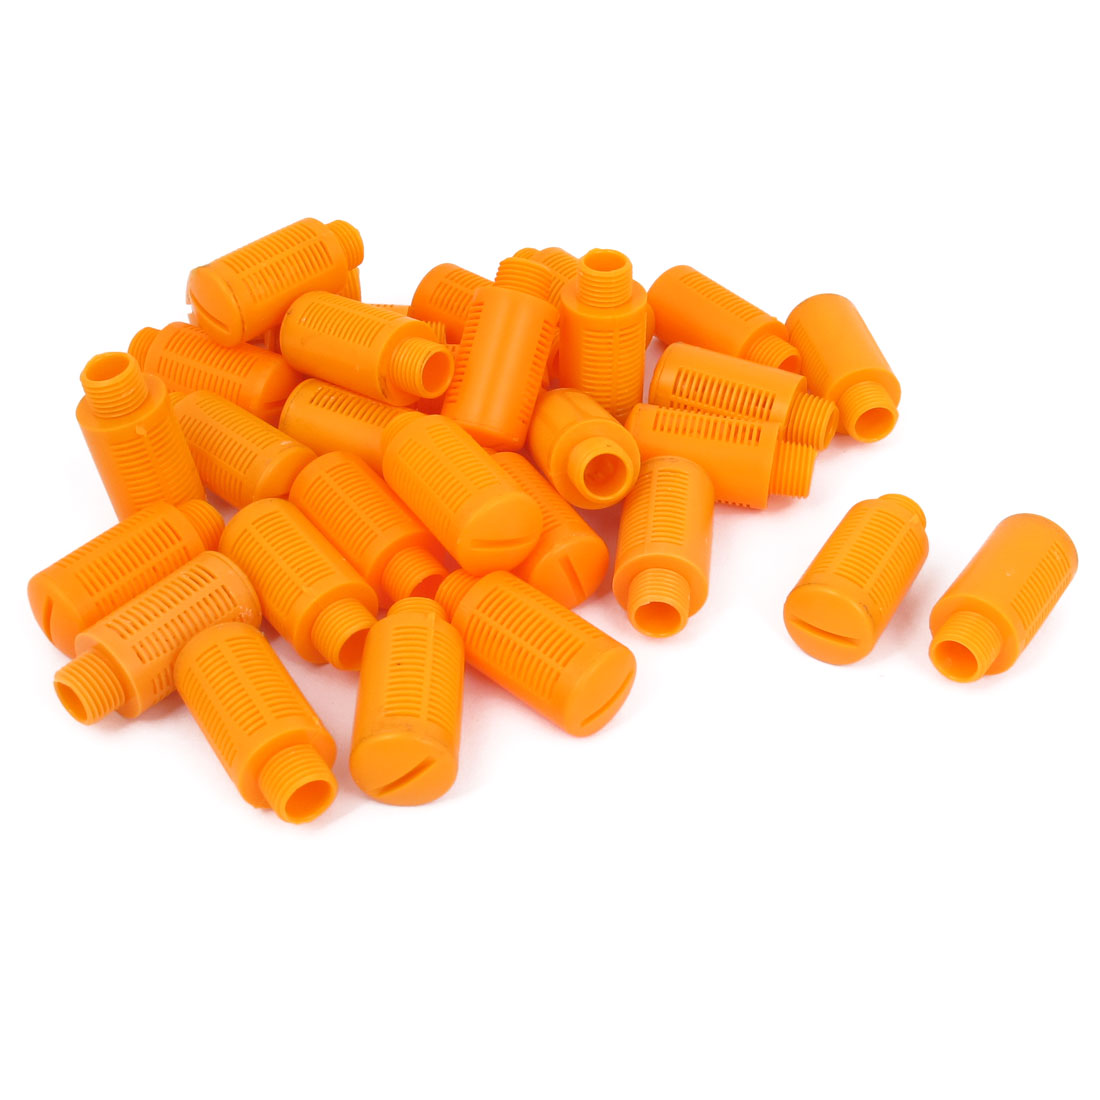 1/4BSP Male Thread Plastic Pneumatic Silencer Muffler Noise Exhaust Orange 30pcs